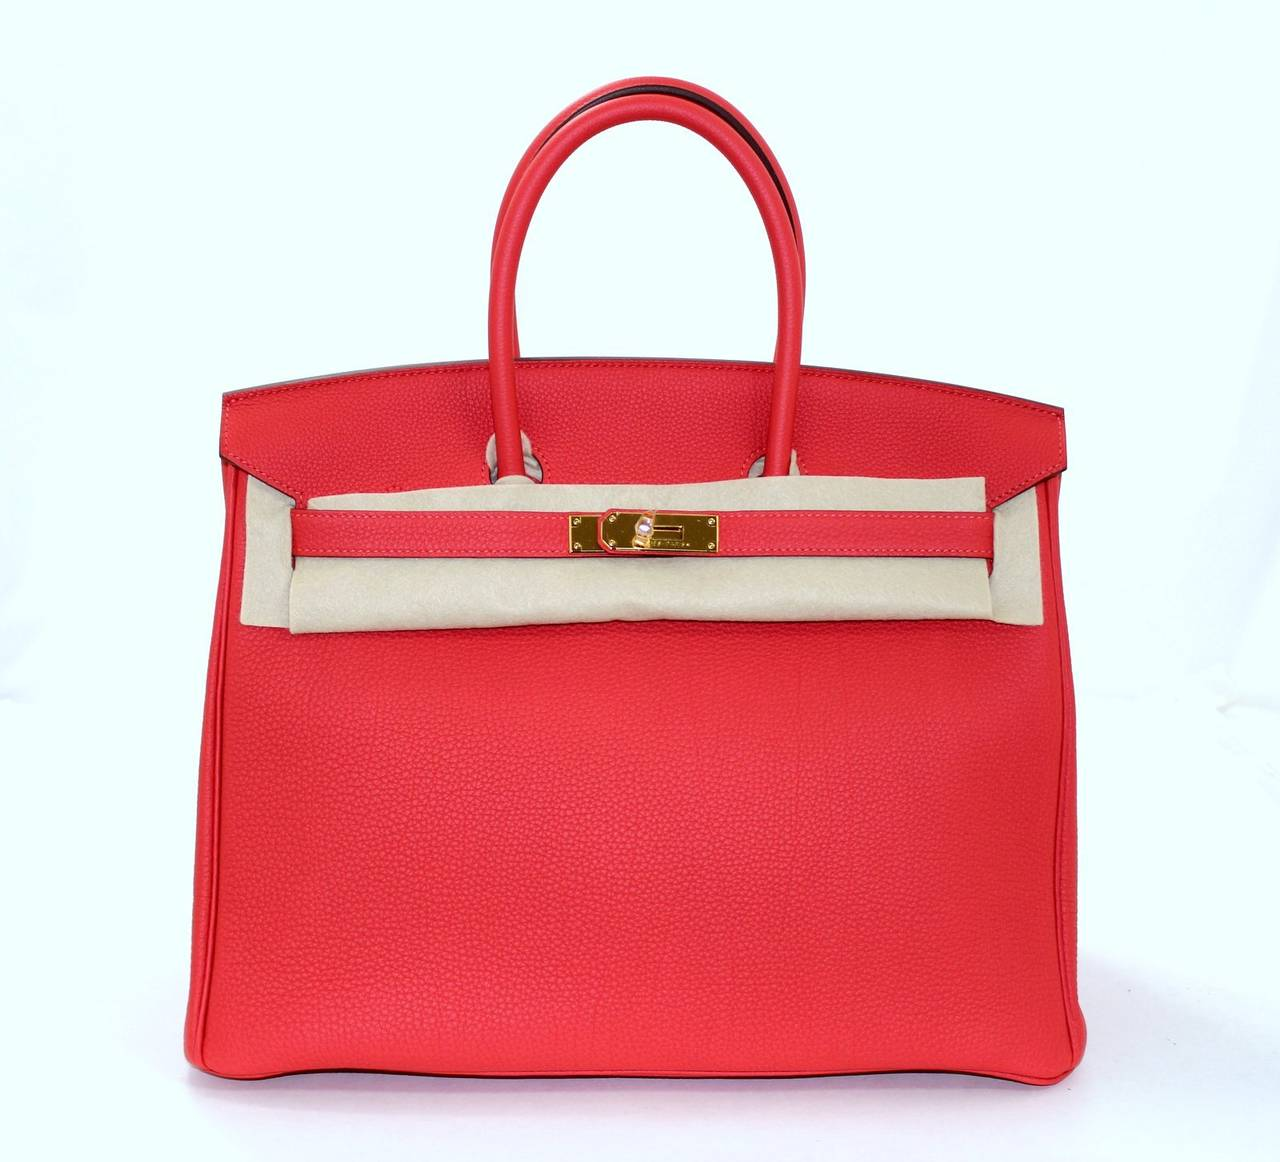 price of hermes birkin togo in us